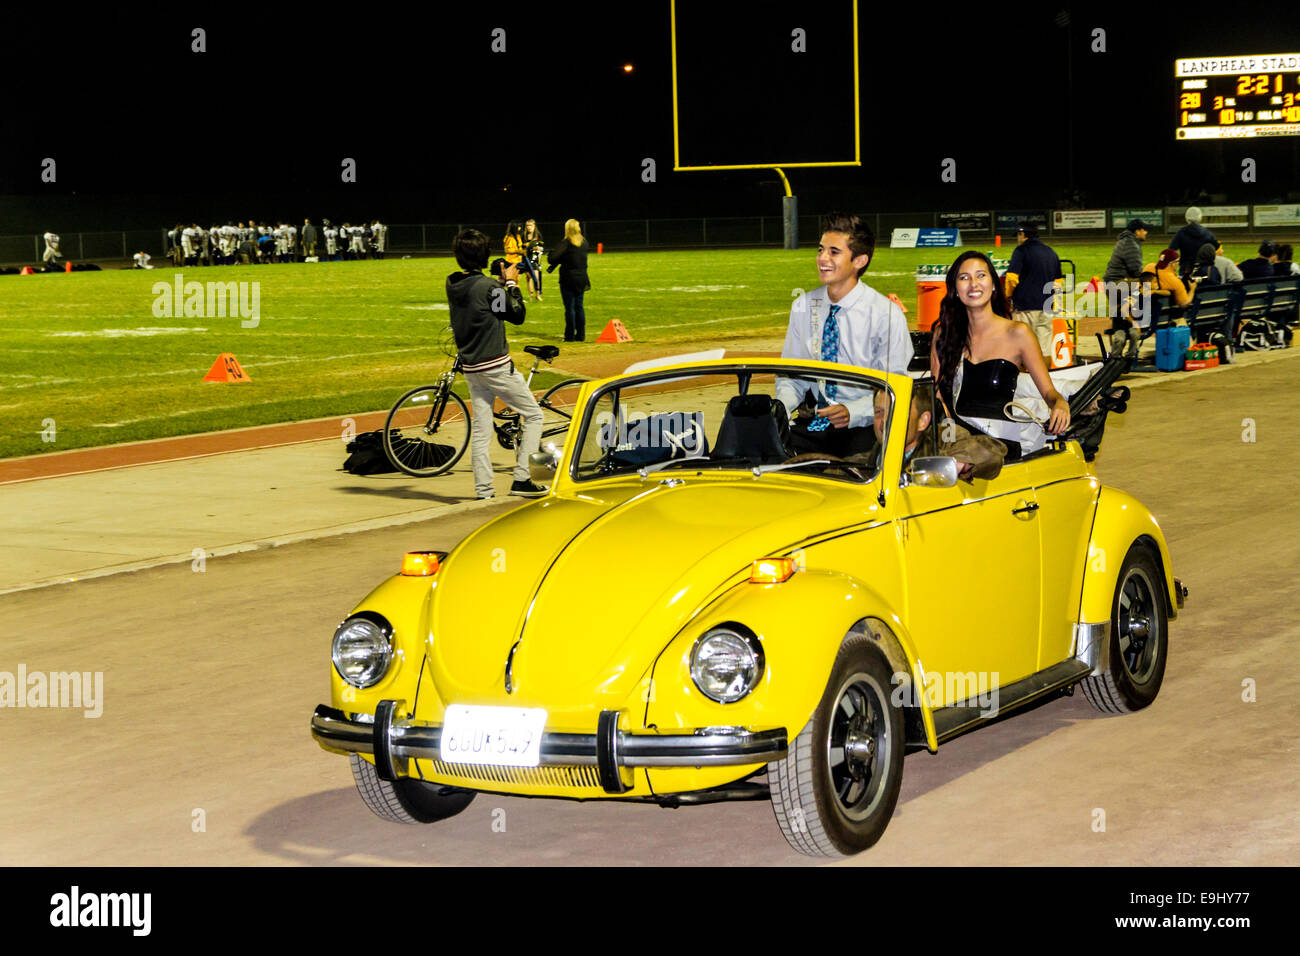 A High School Football Game and Homecoming celebration in Modesto California October 2014 - Stock Image